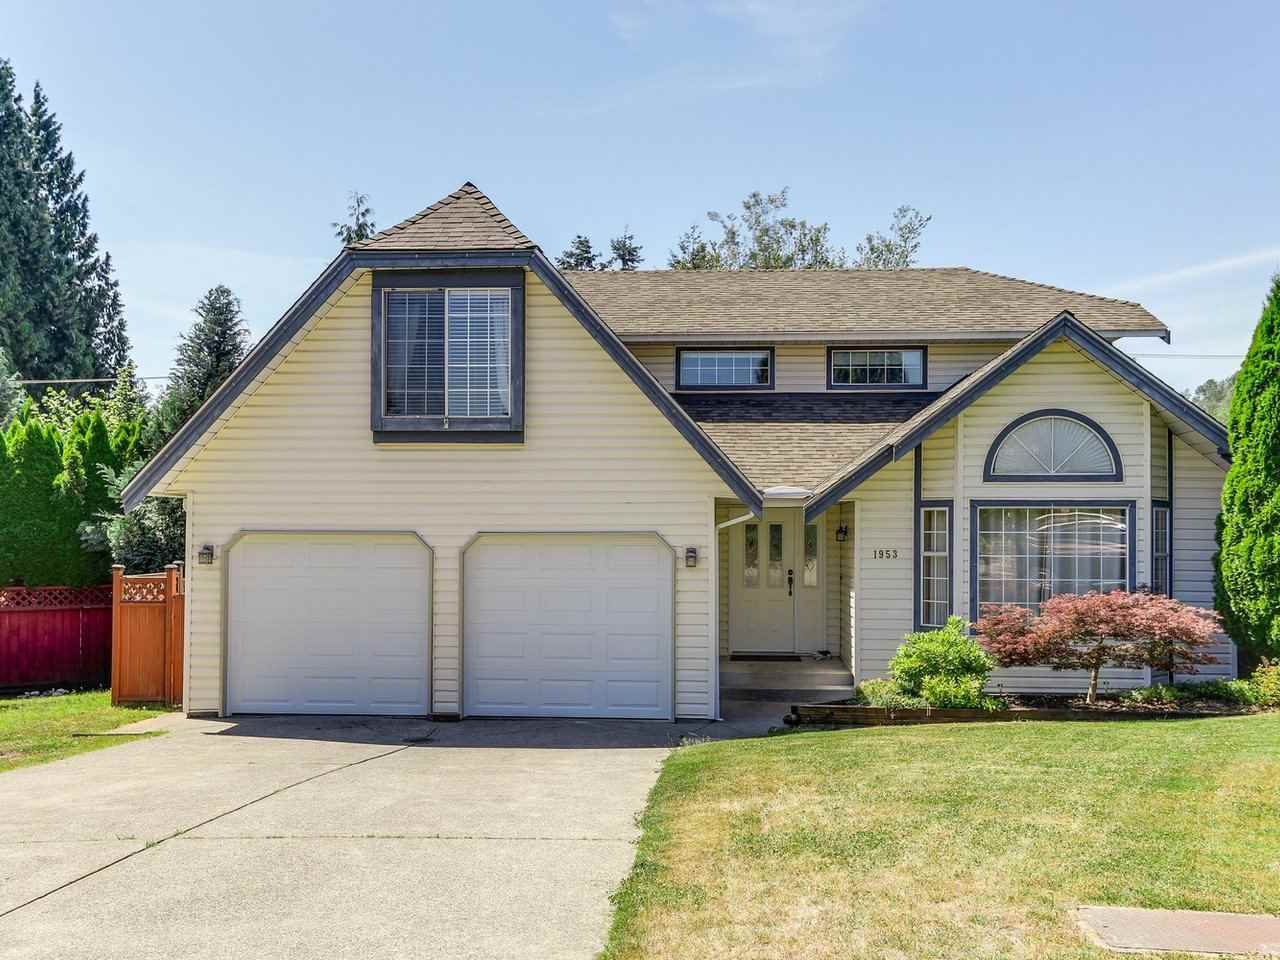 Main Photo: 1953 EUREKA Avenue in Port Coquitlam: Citadel PQ House for sale : MLS®# R2184941